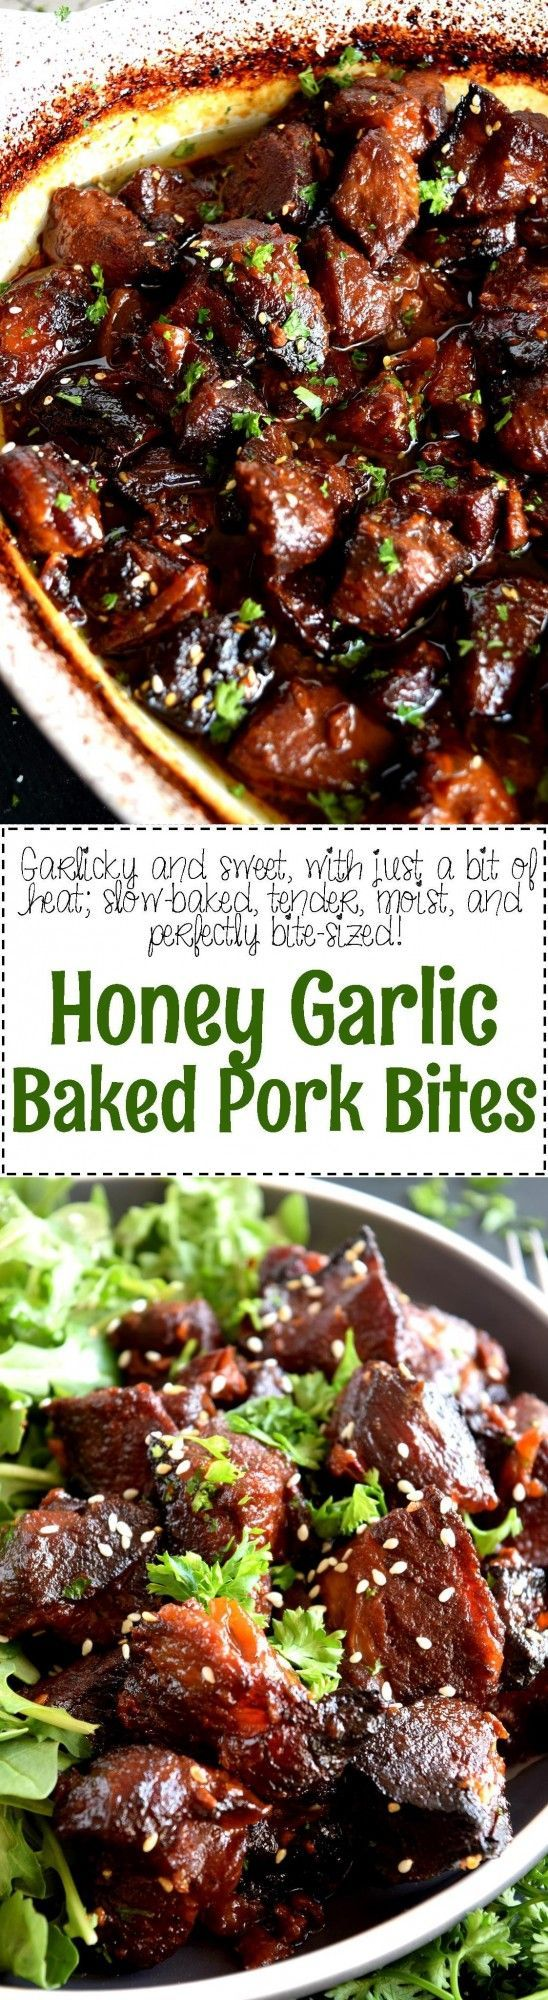 Honey Garlic Baked Pork Bites - Lord Byron's Kitchen - Tender, with charred bits, these Honey Garlic Baked Pork Bites are delicious and easy to prepare.  Perfect for a family dinner anytime! - #pork #honeygarlic #familydinner